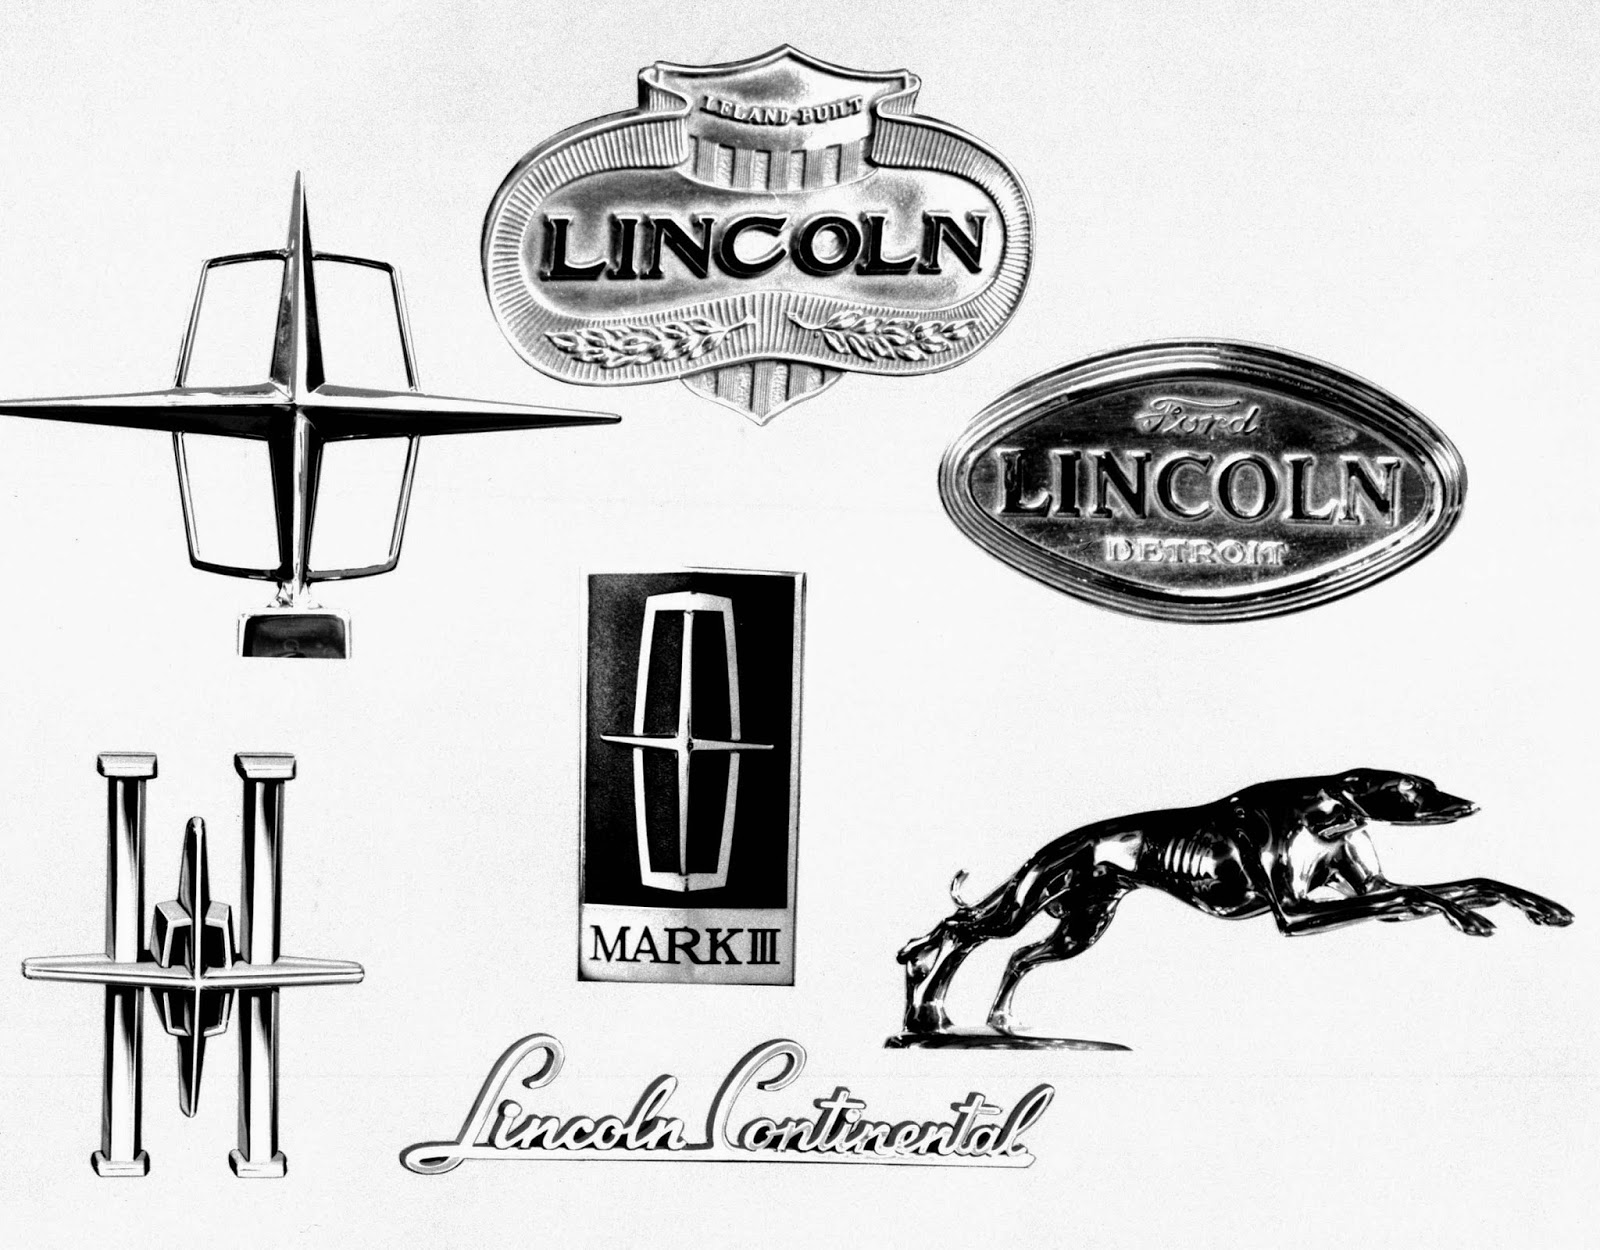 matt u0026 39 s lincoln blog  lincoln emblems over the years